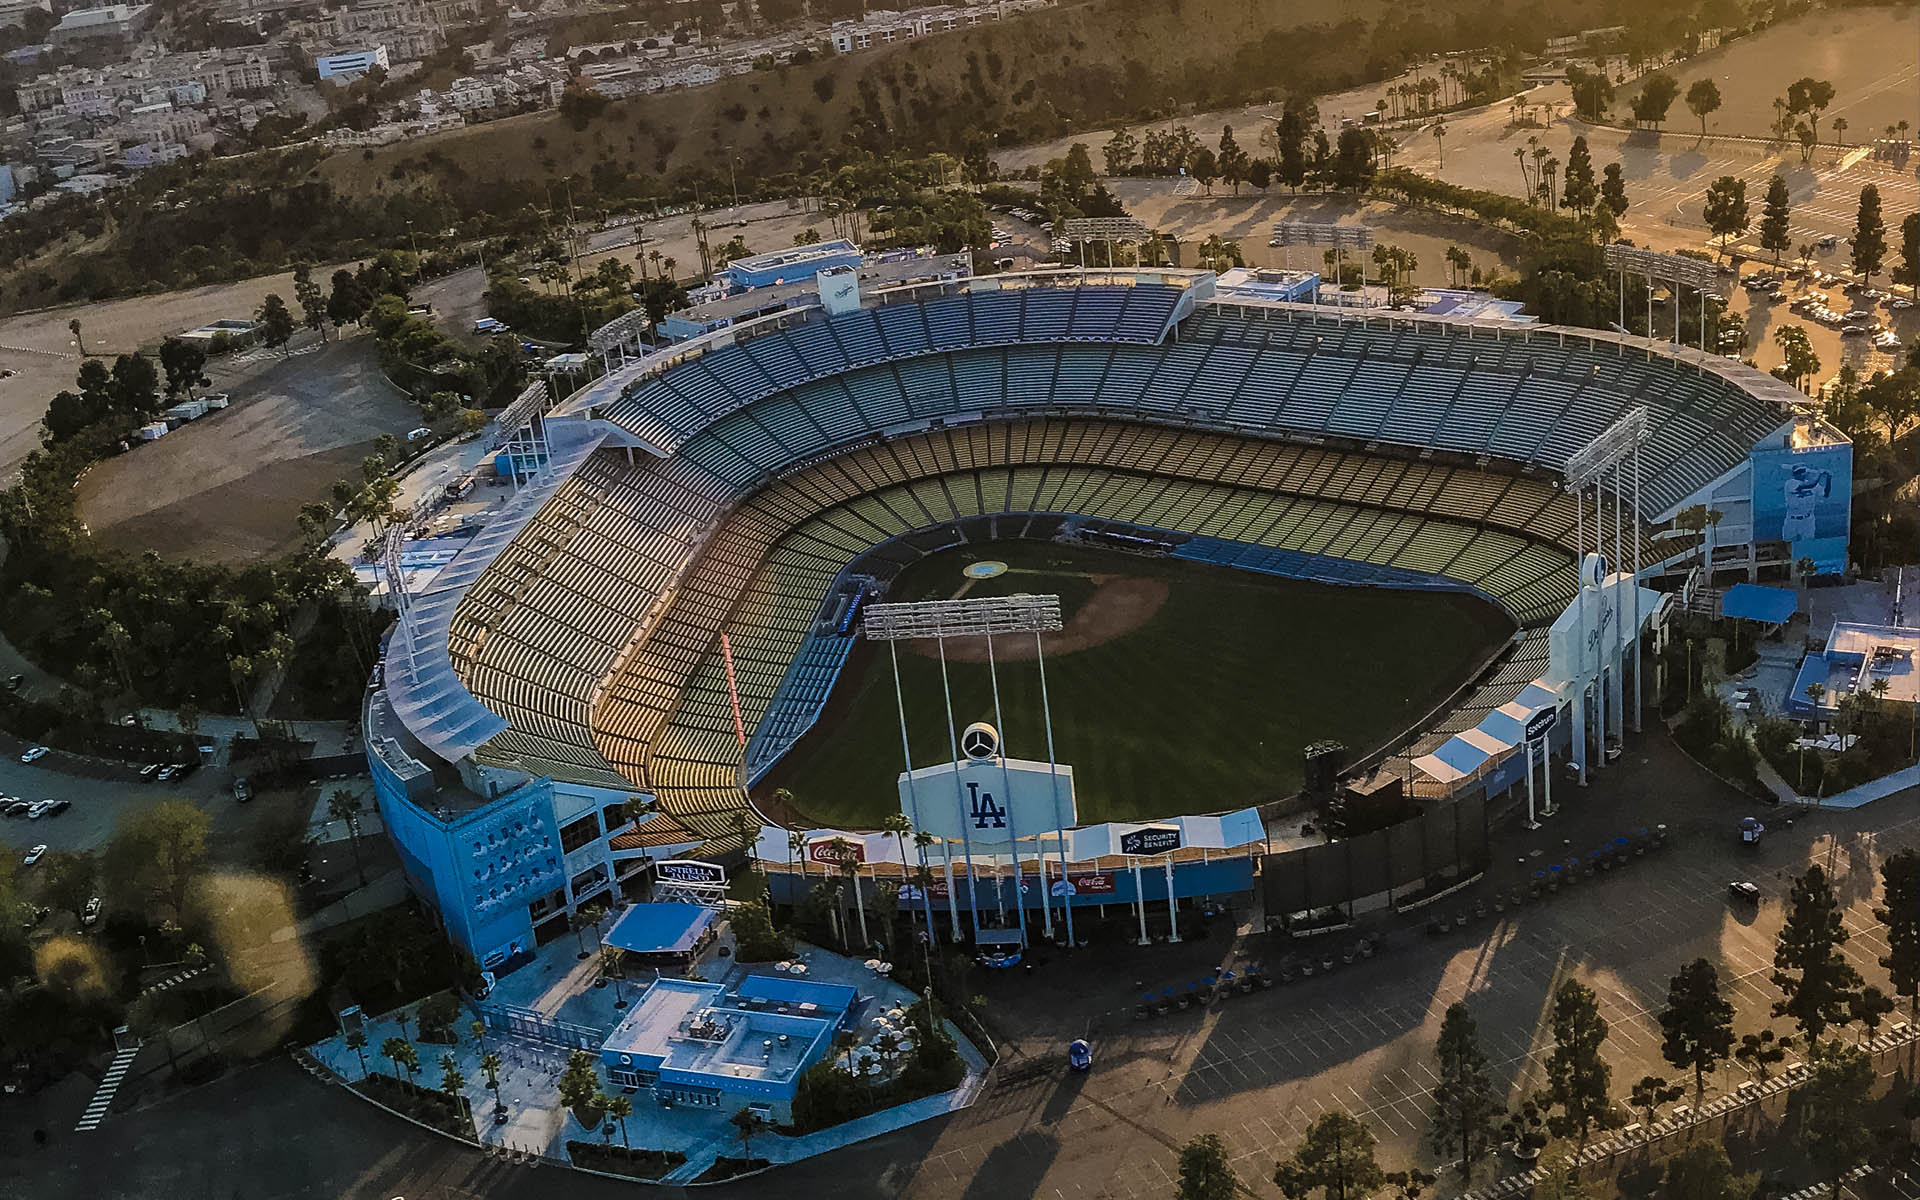 Flying over Dodger Stadium